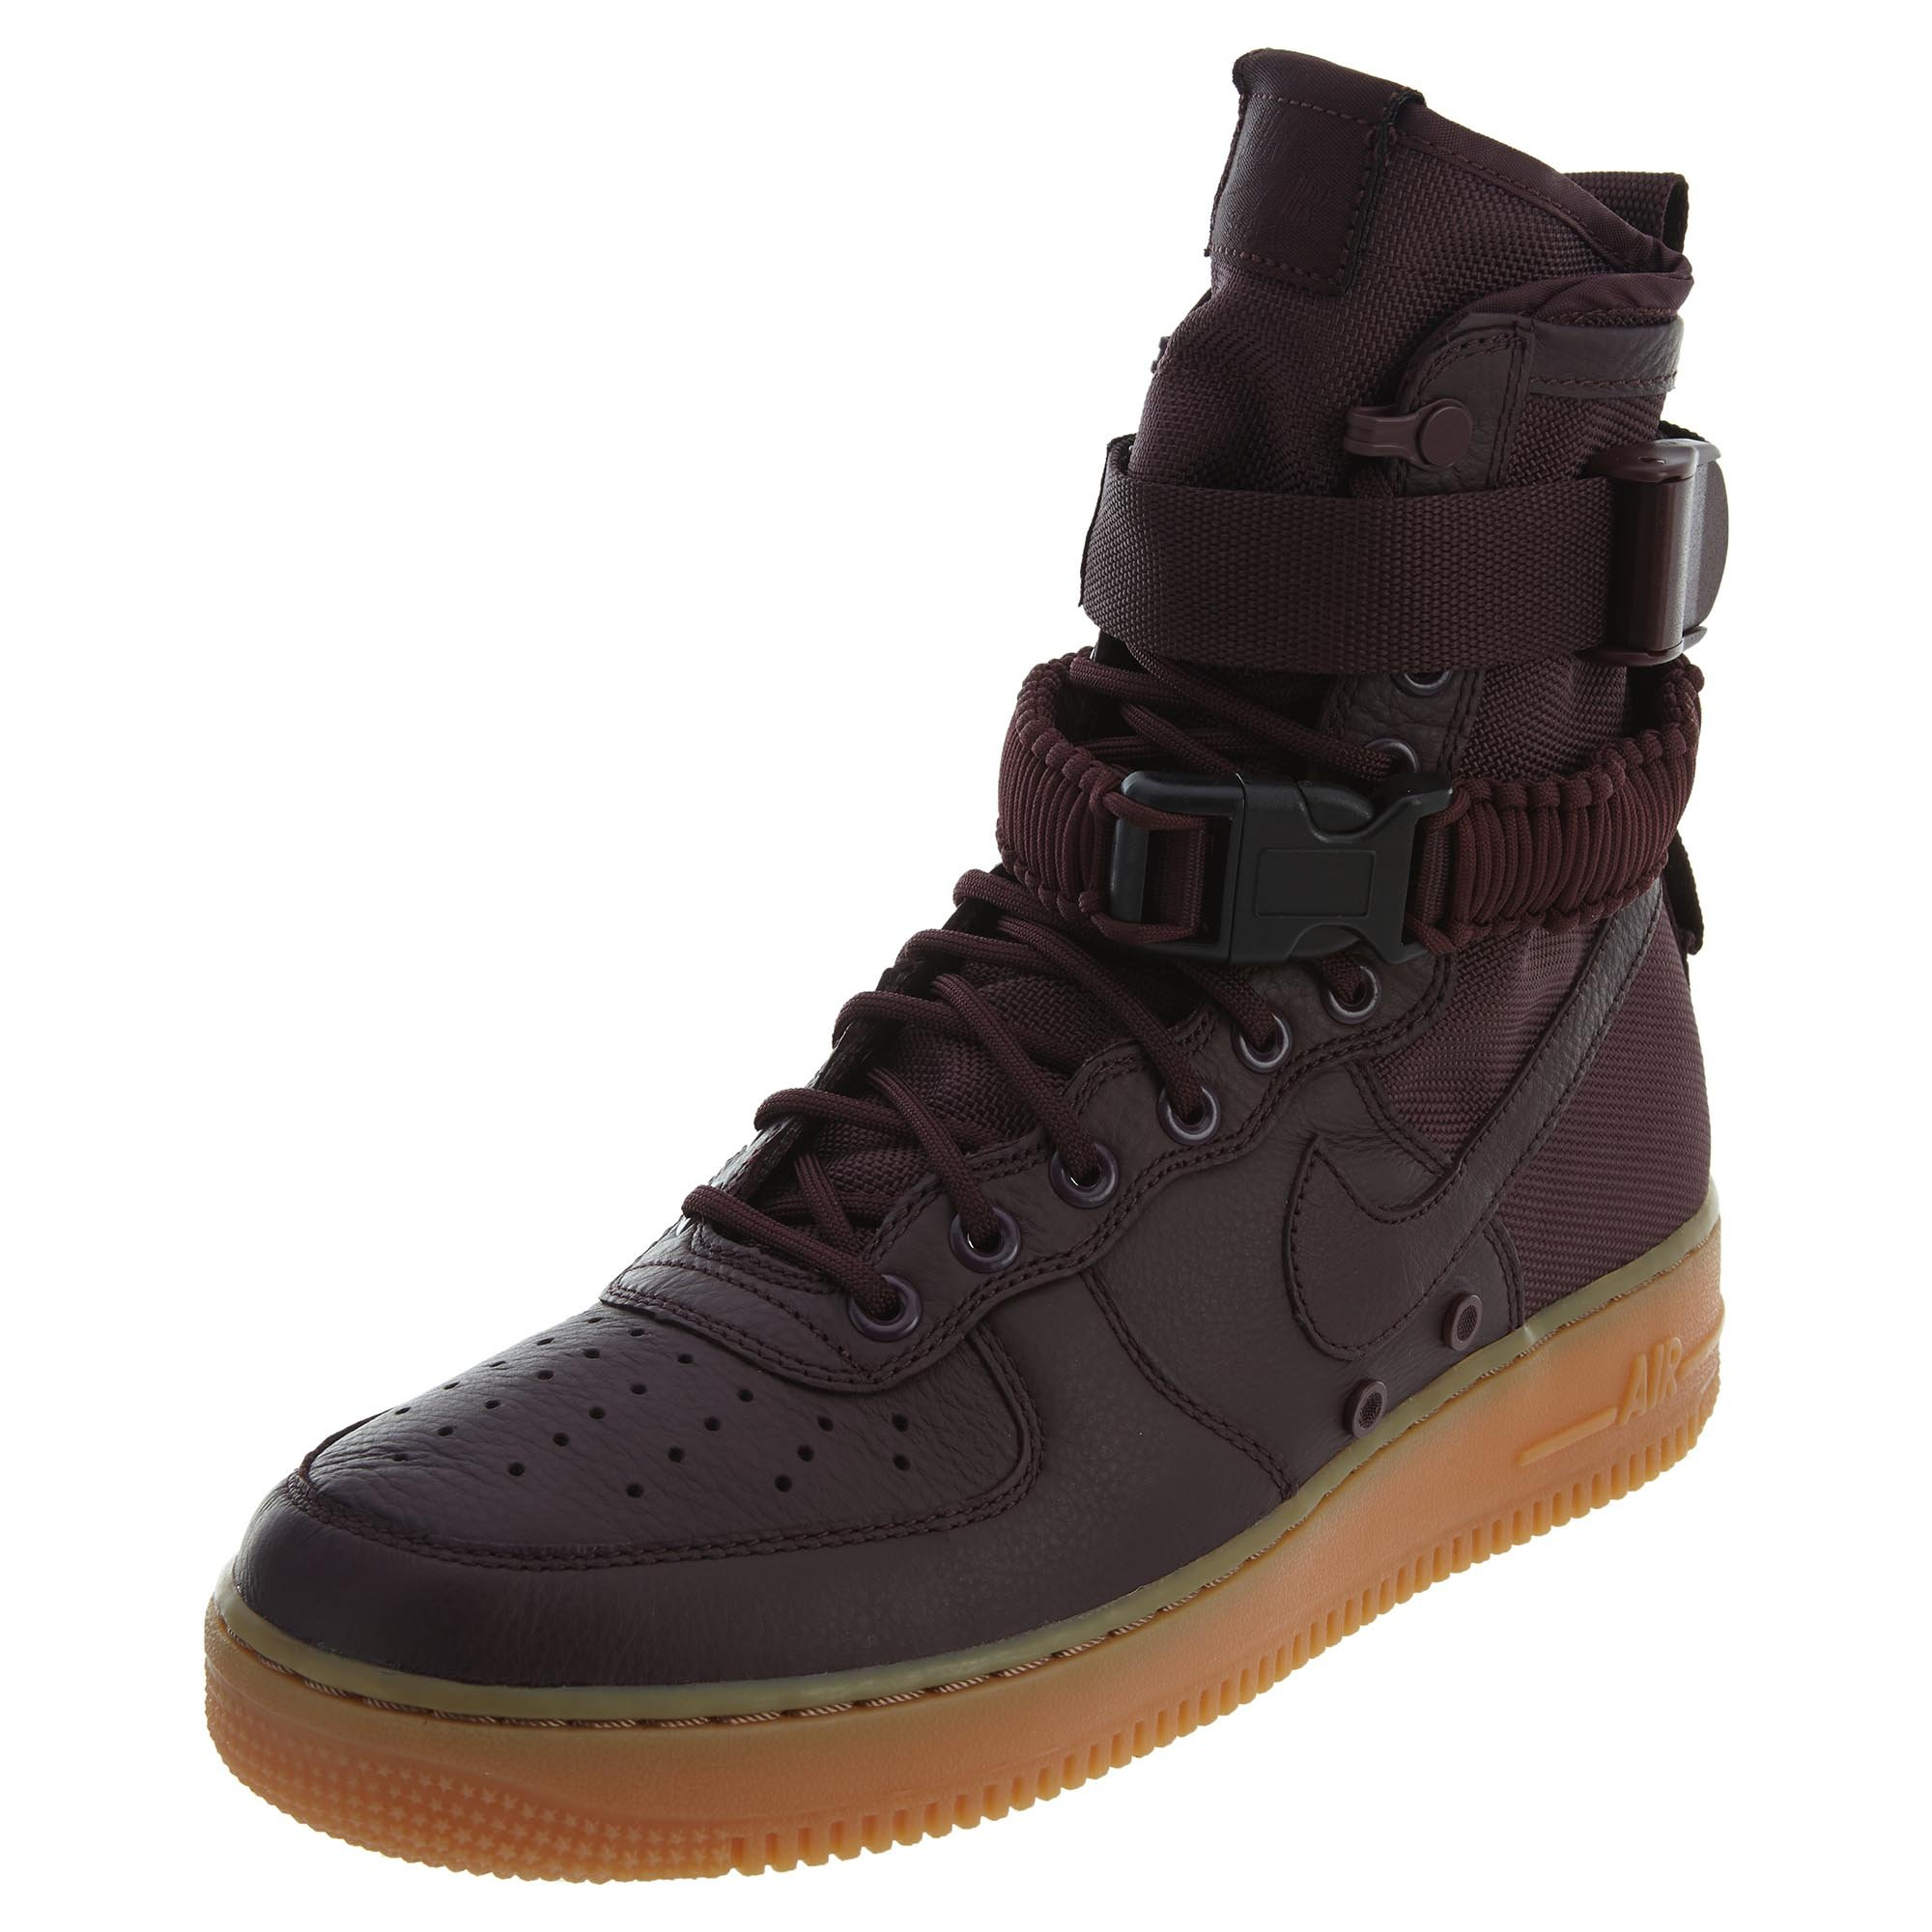 32ea93c93f01 Galleon - NIKE Mens SF Air Force 1 HIgh Shoes Deep Burgundy Black  864024-600 Size 13